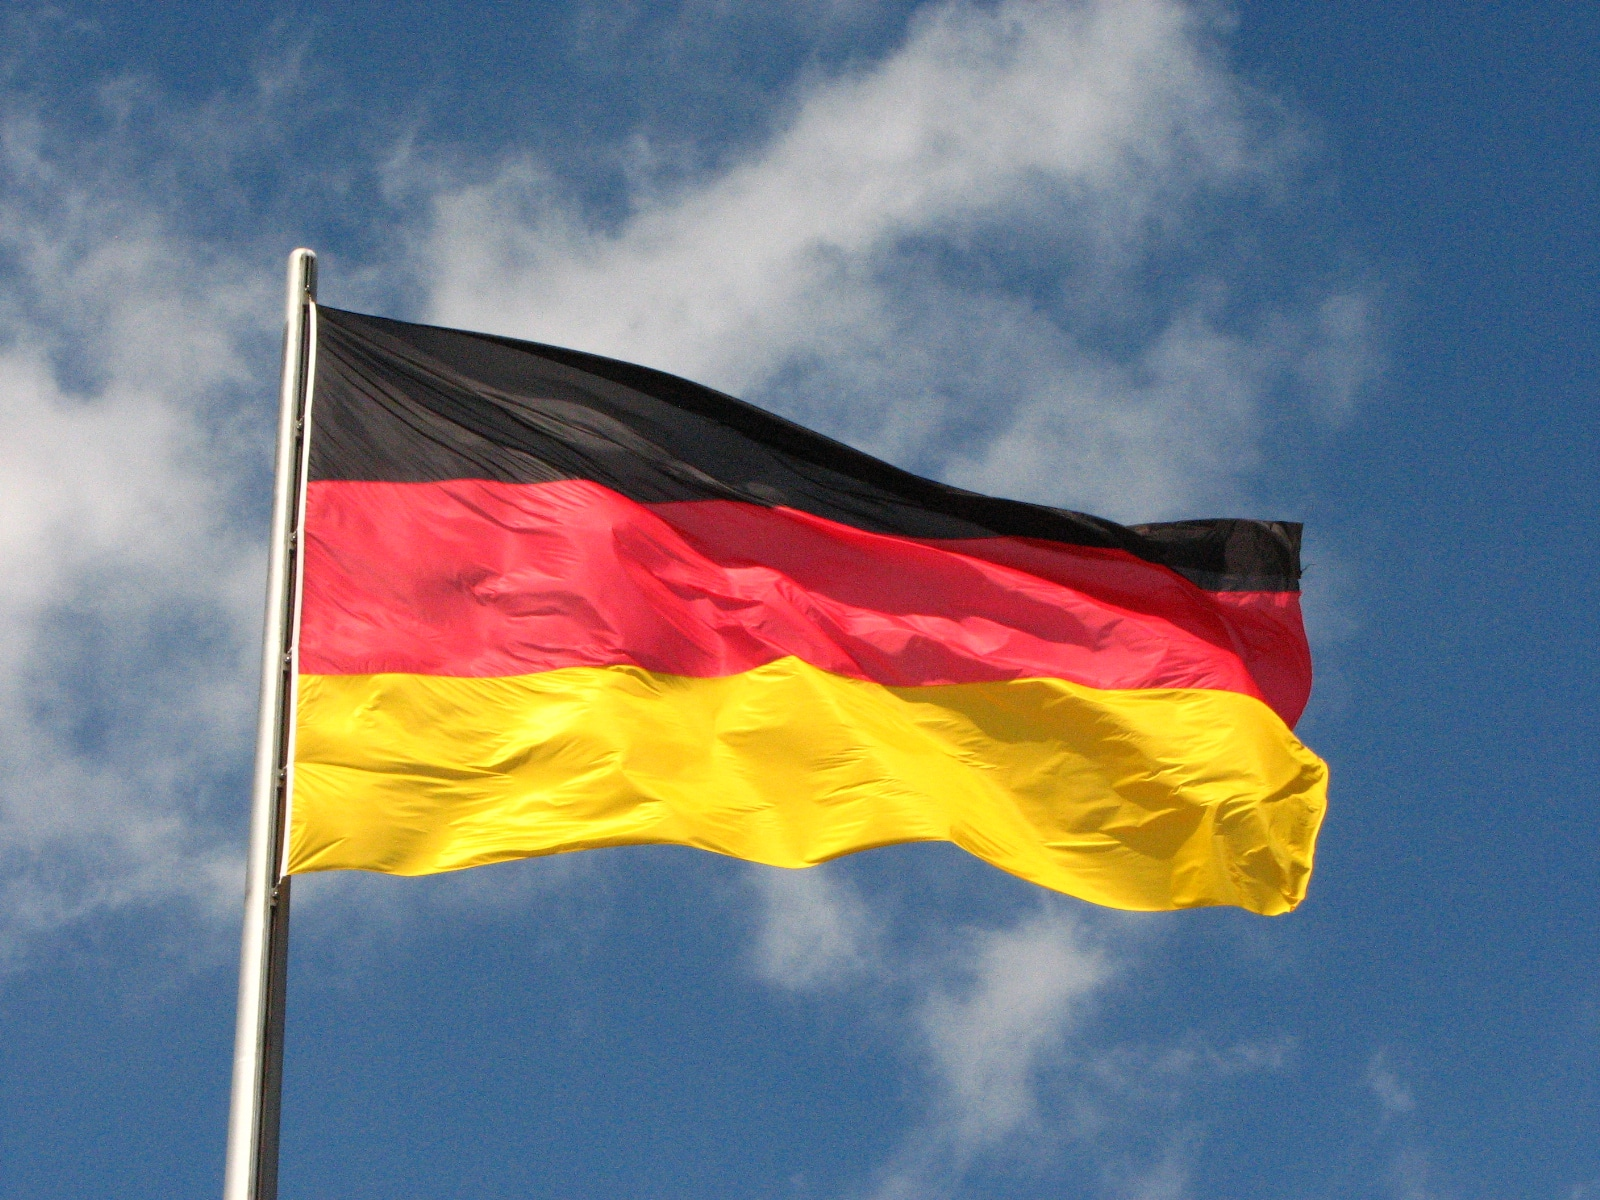 Real estate company in Germany posted $24M bond in Stellar blockchain